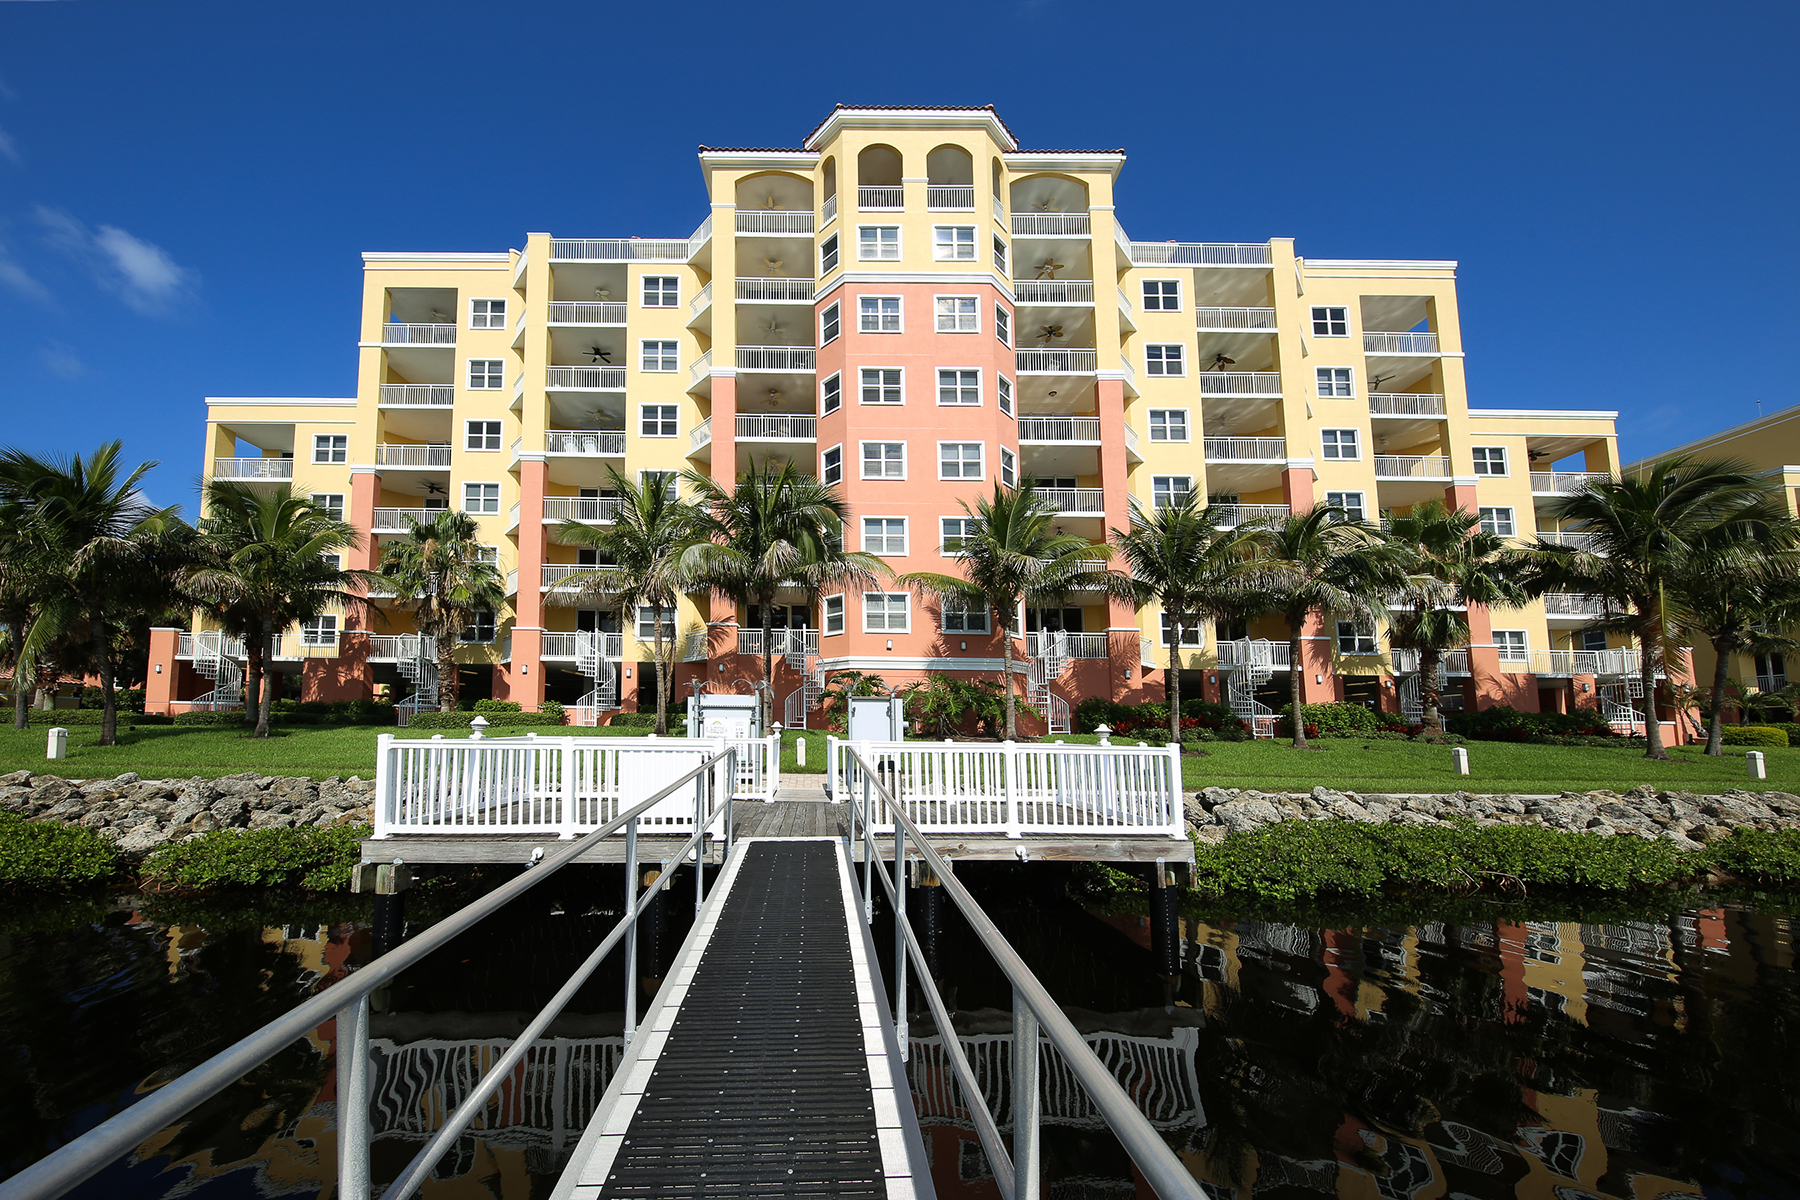 Condominium for Sale at LAGUNA AT RIVIERA DUNES 610 Riviera Dunes Way 108 Palmetto, Florida, 34221 United States